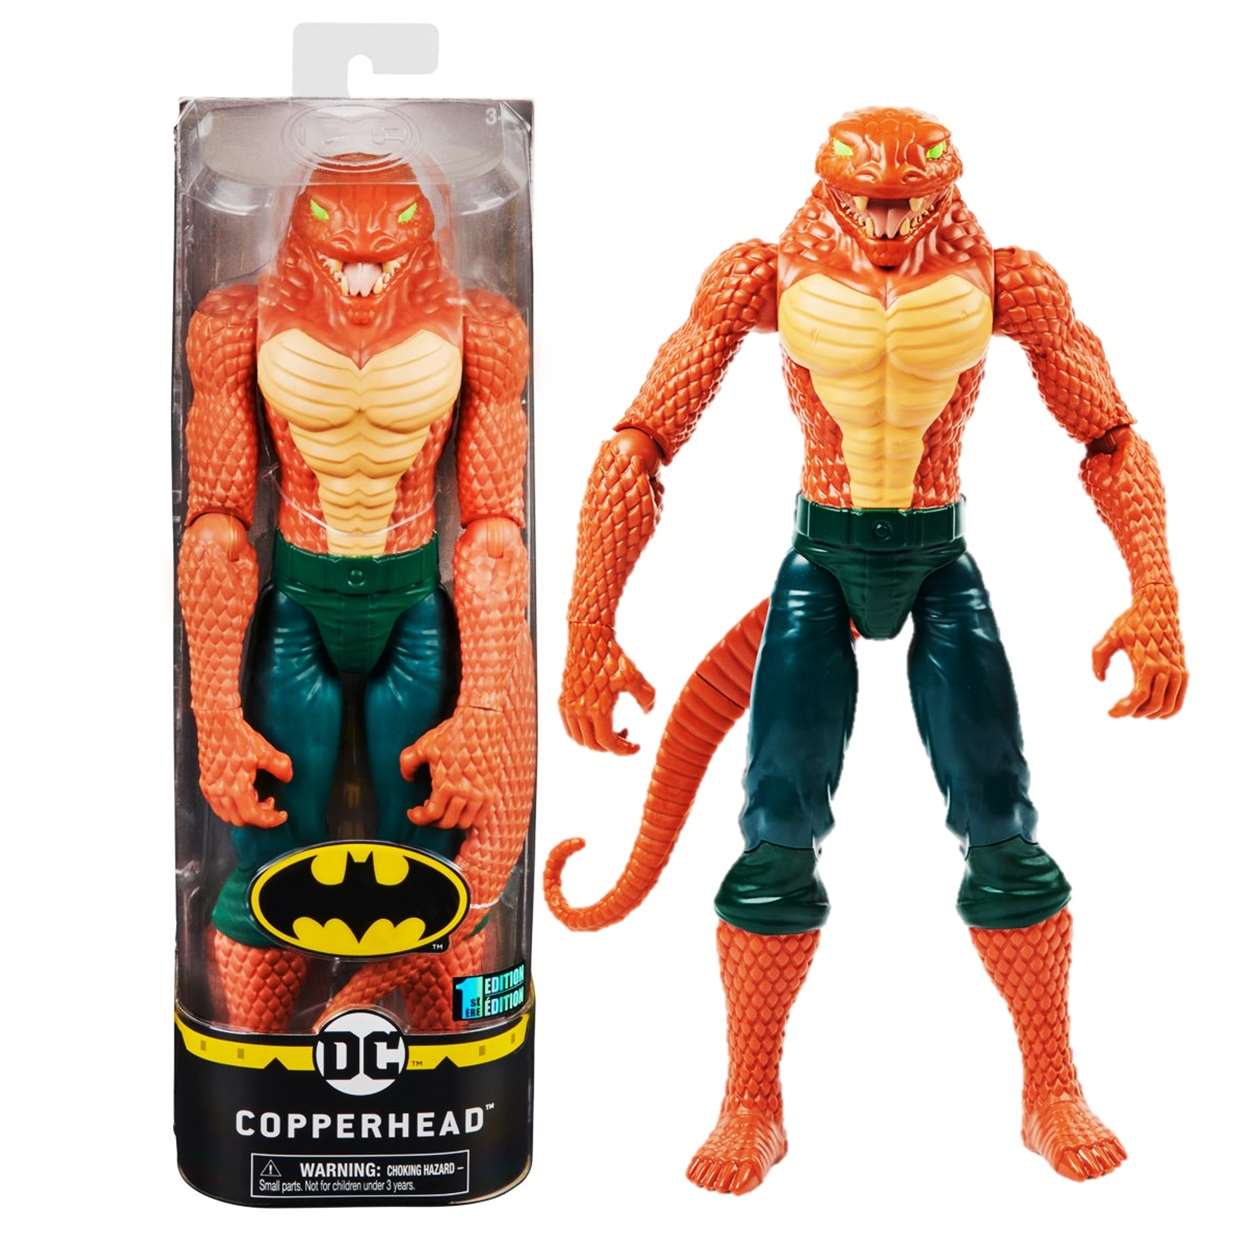 Copperhead 1st Edition Figura The Caped Crusader Spin Master